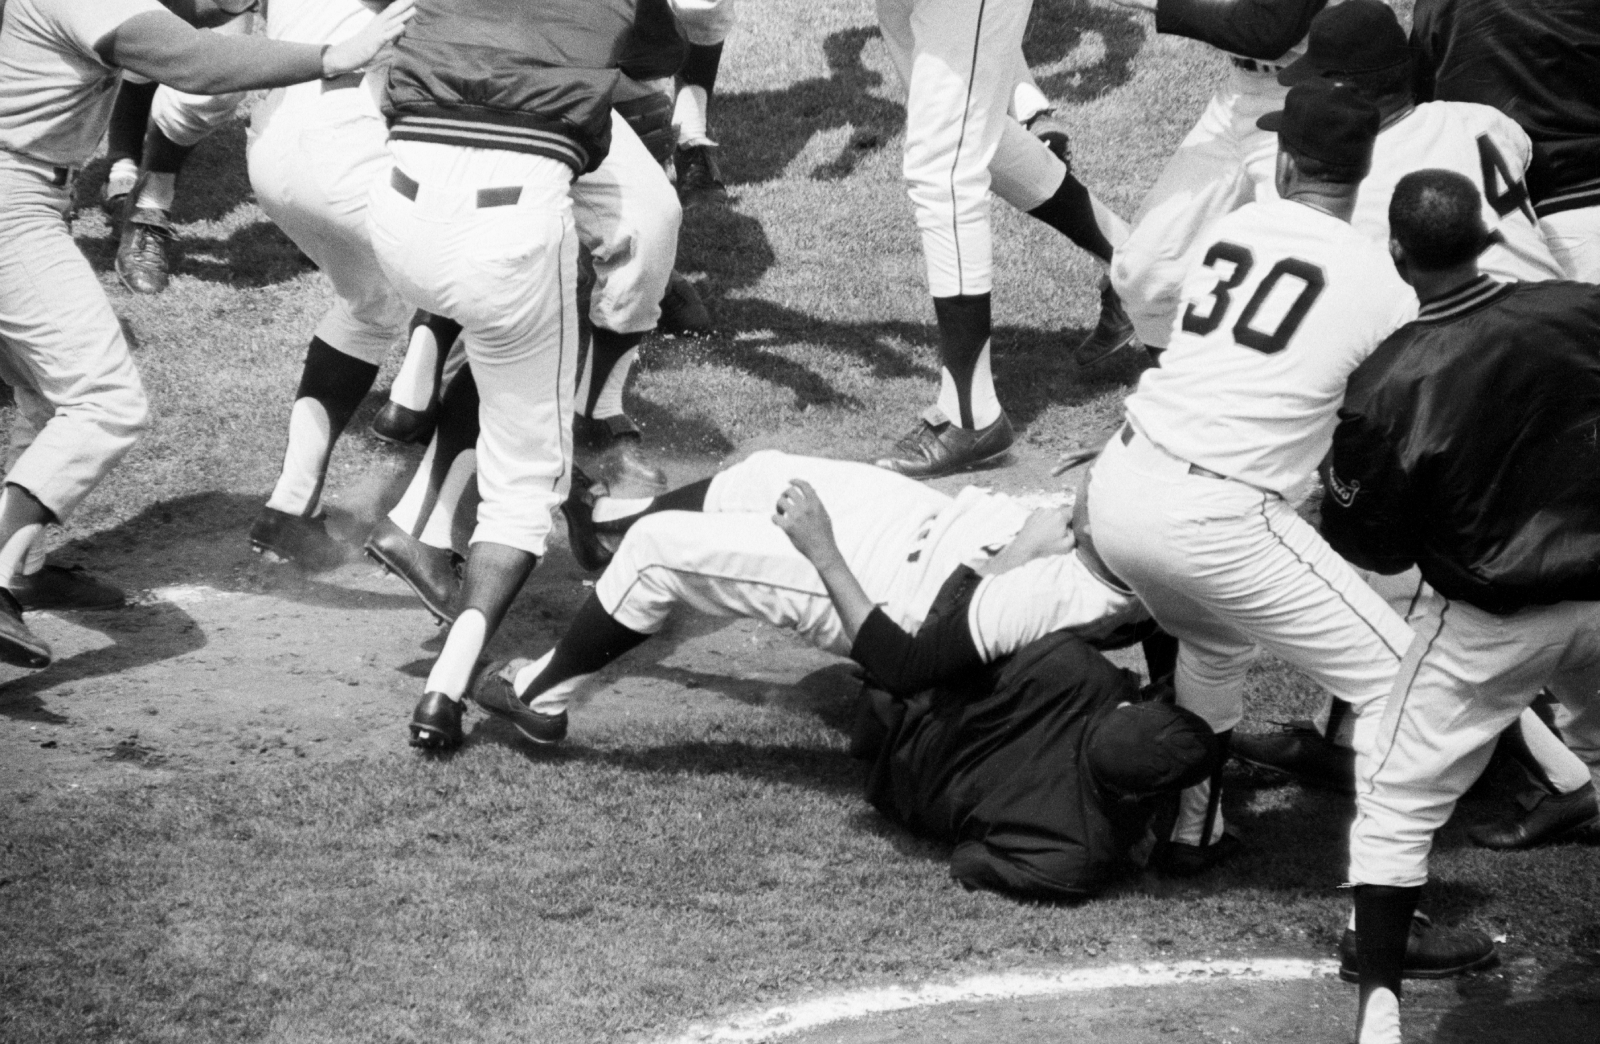 Juan Marichal Ignited What Might Be the Most Horrific Brawl in MLB History